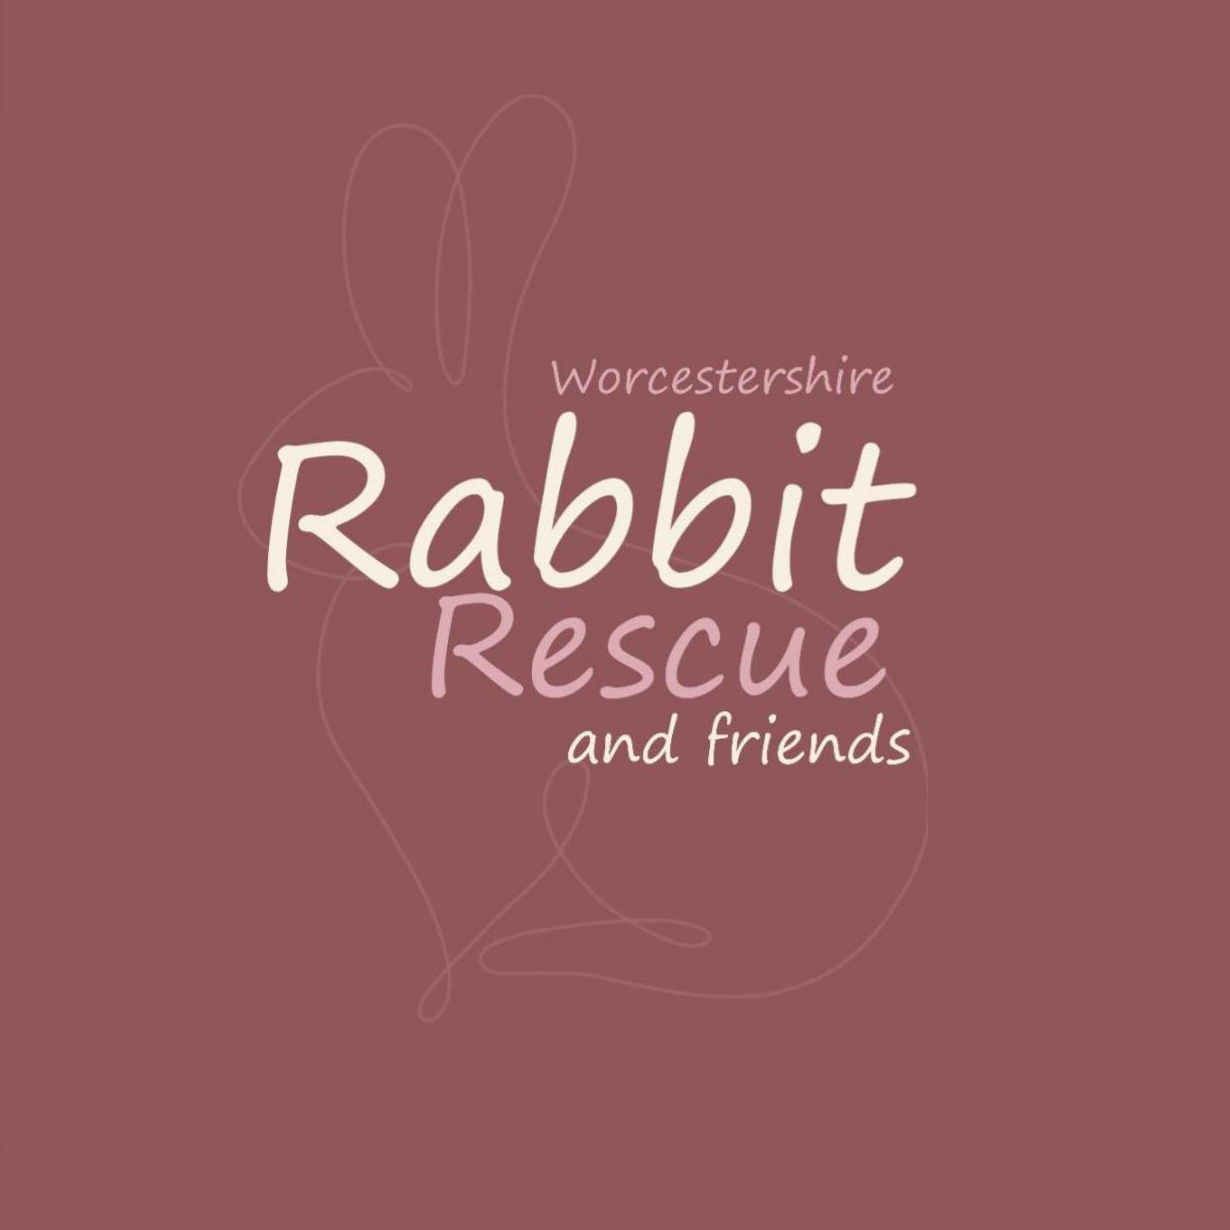 Worcestershire Rabbit Rescue and Friends, Malvern